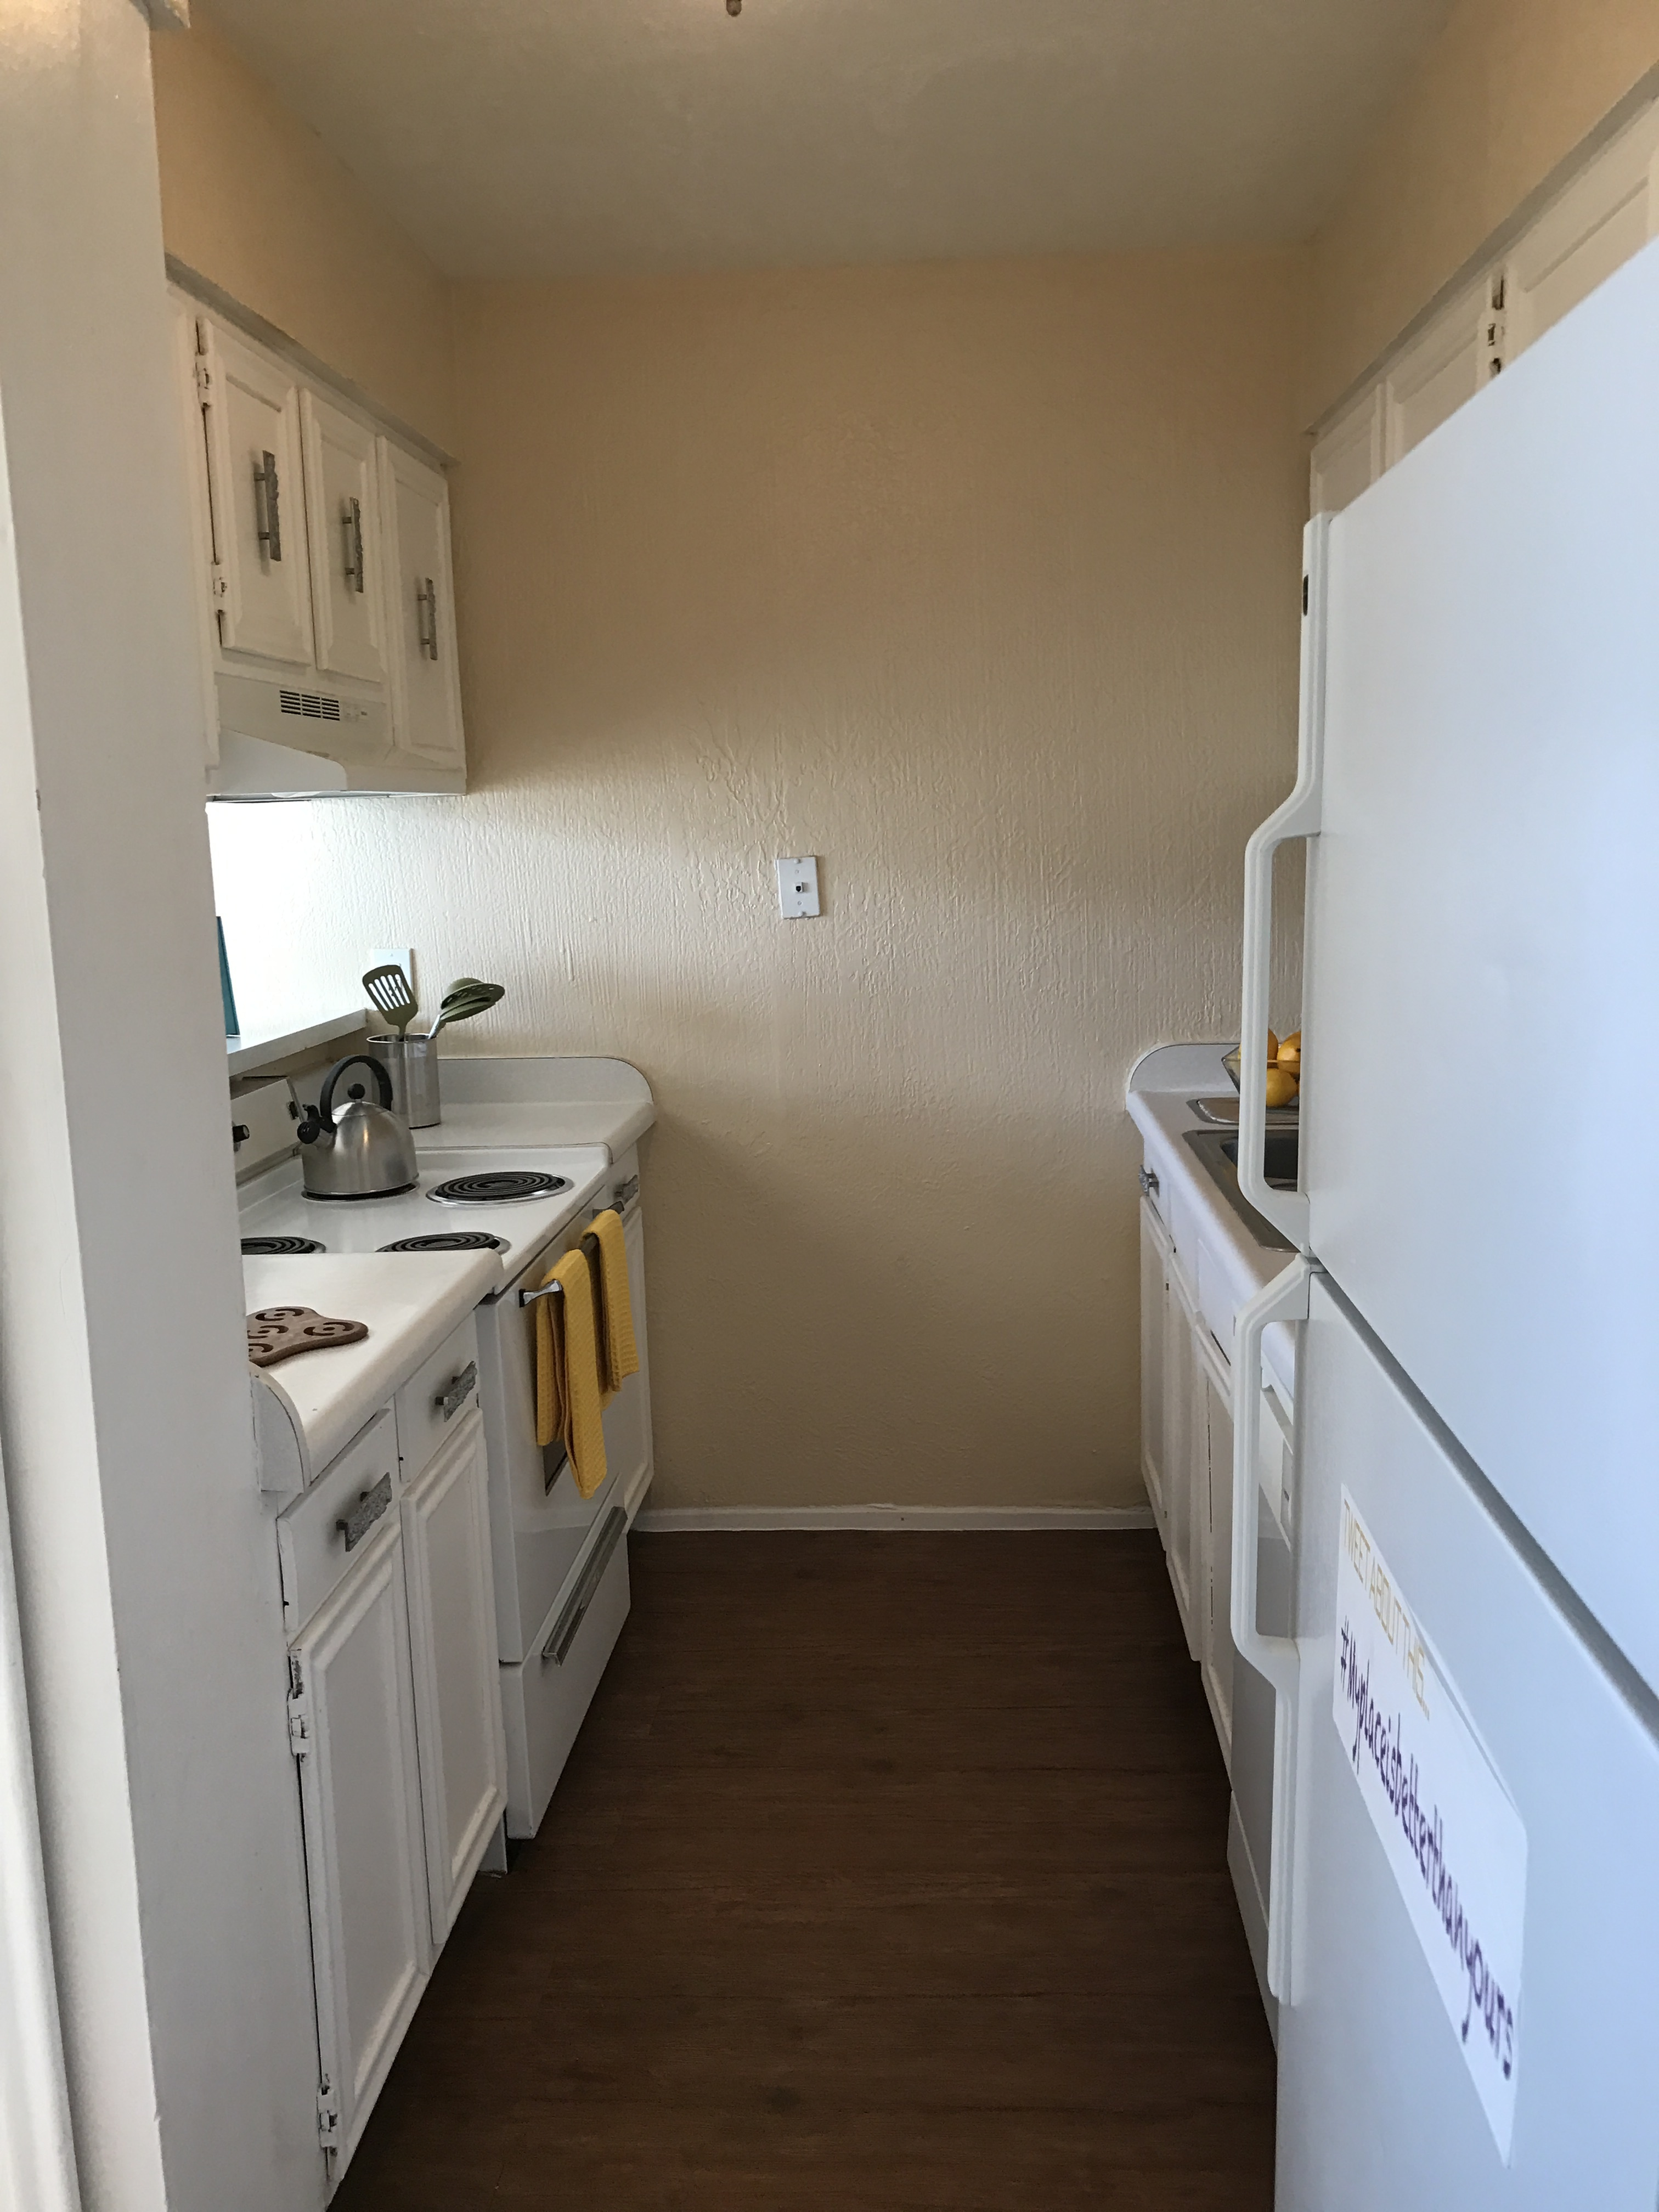 Image of Dishwasher for Copper Commons